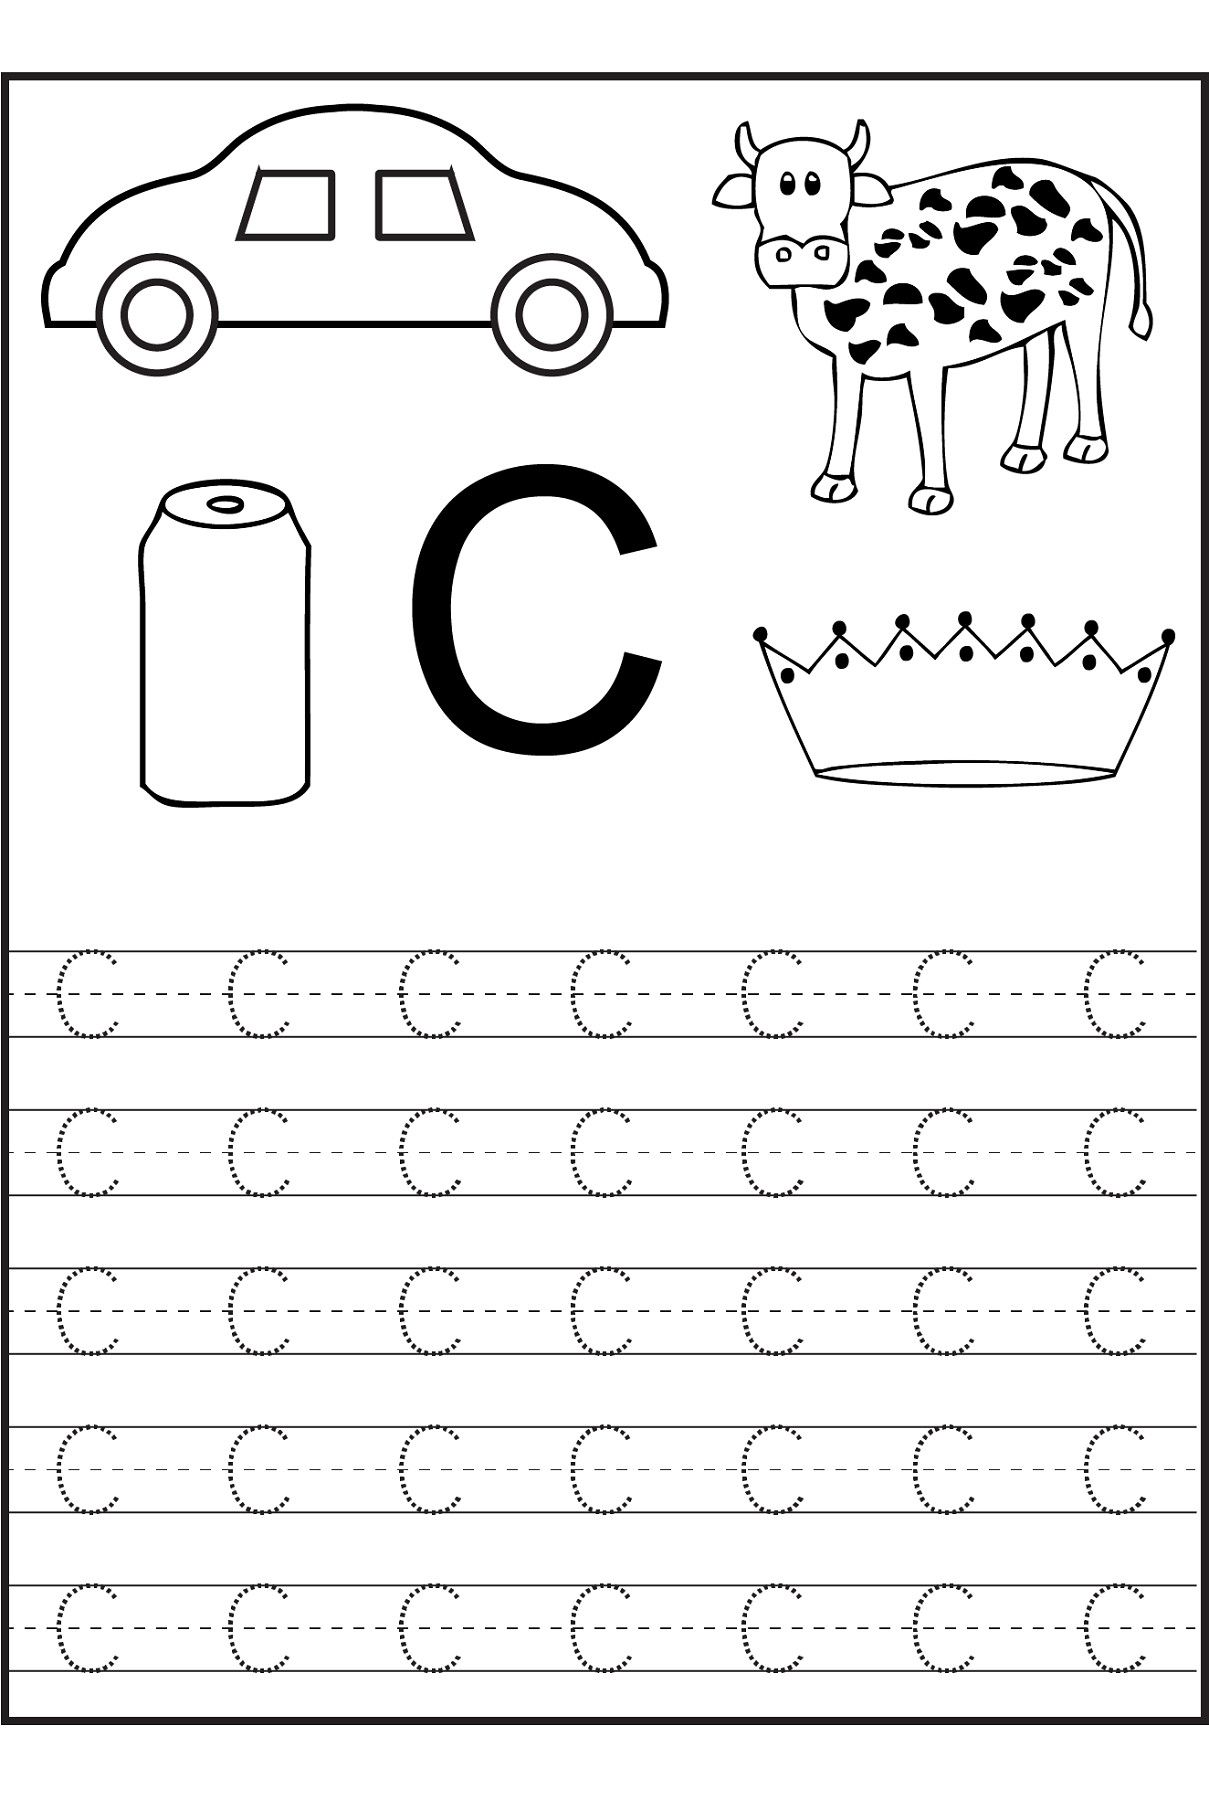 7 Letter C Writing Practice Worksheet In